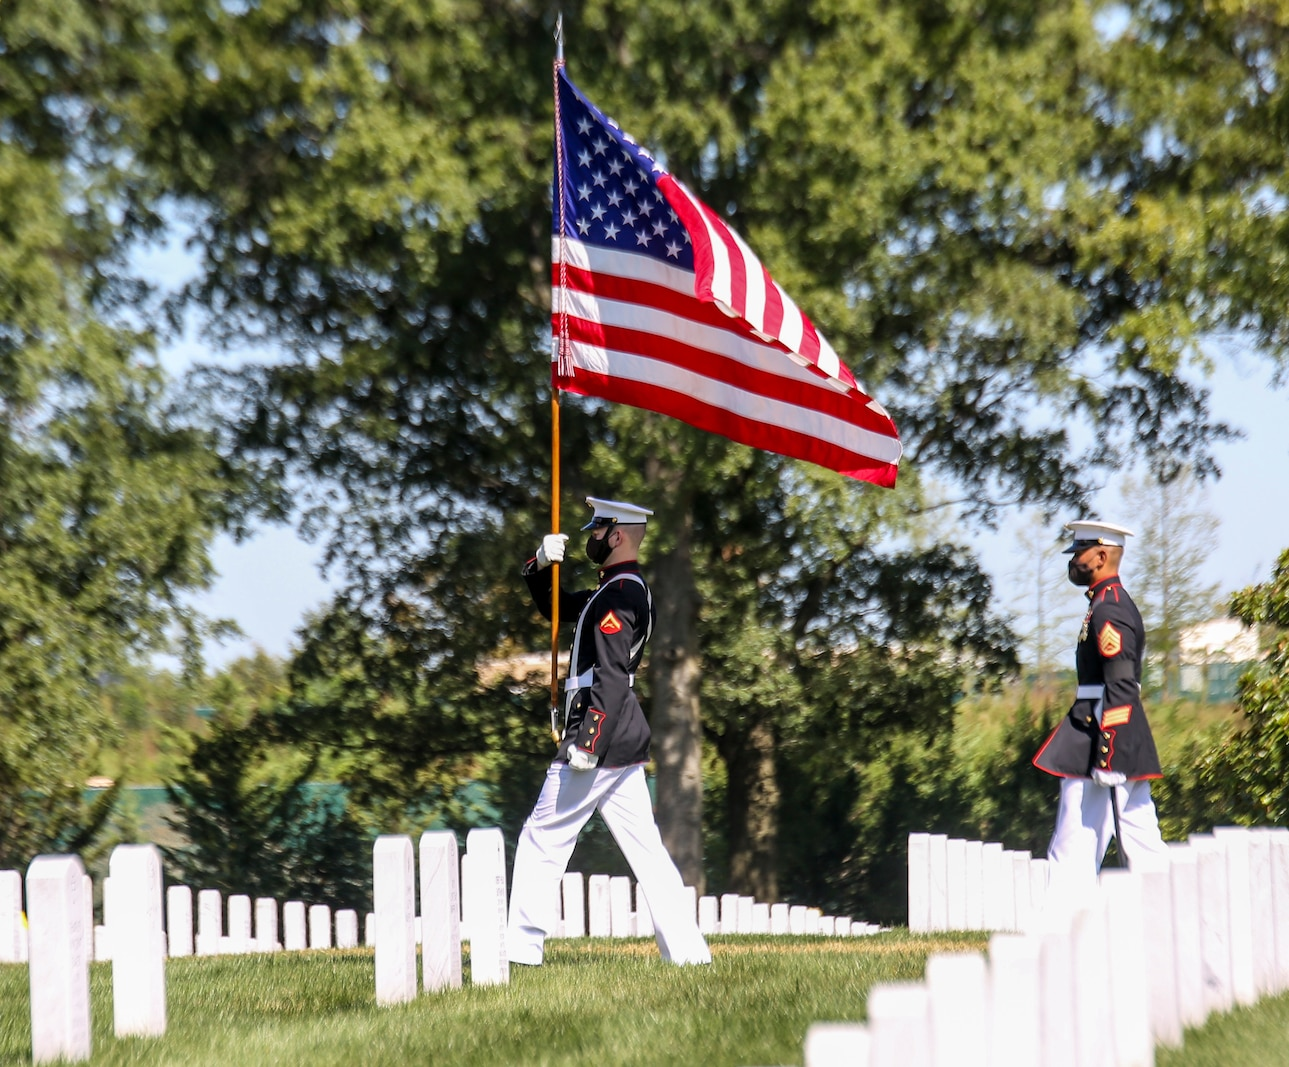 Lance Cpl. Joshua Murphy, flag bearer, the Official U.S. Marine Corps Color Guard, marches with the National Ensign during a full honors funeral for repatriated WWII Marine Pfc. Harry Morrissey at Arlington National Cemetery, Arlington, Virginia, Sept. 22, 2020.